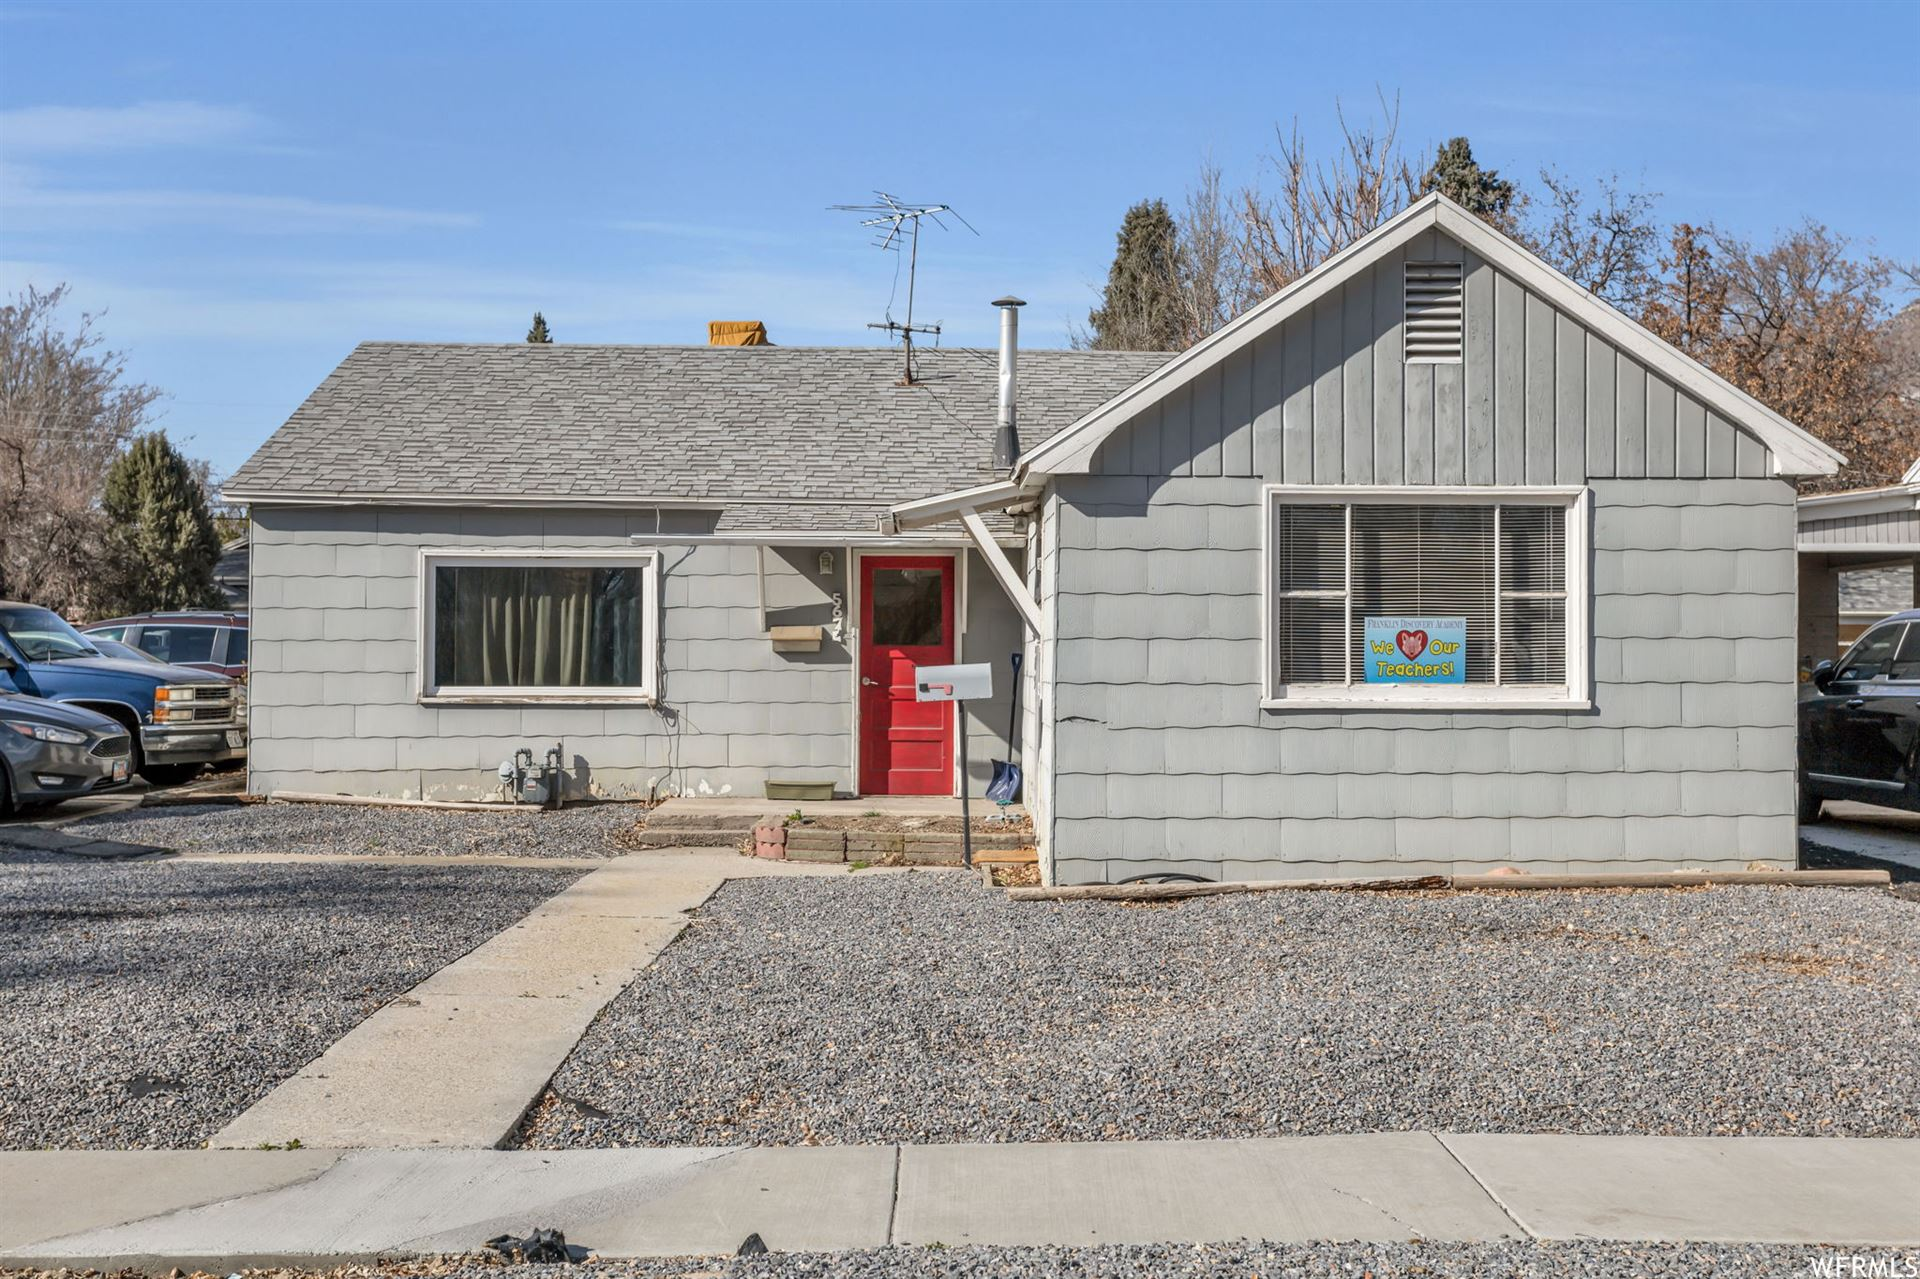 Photo of 567 E 400 N, Provo, UT 84606 (MLS # 1732778)